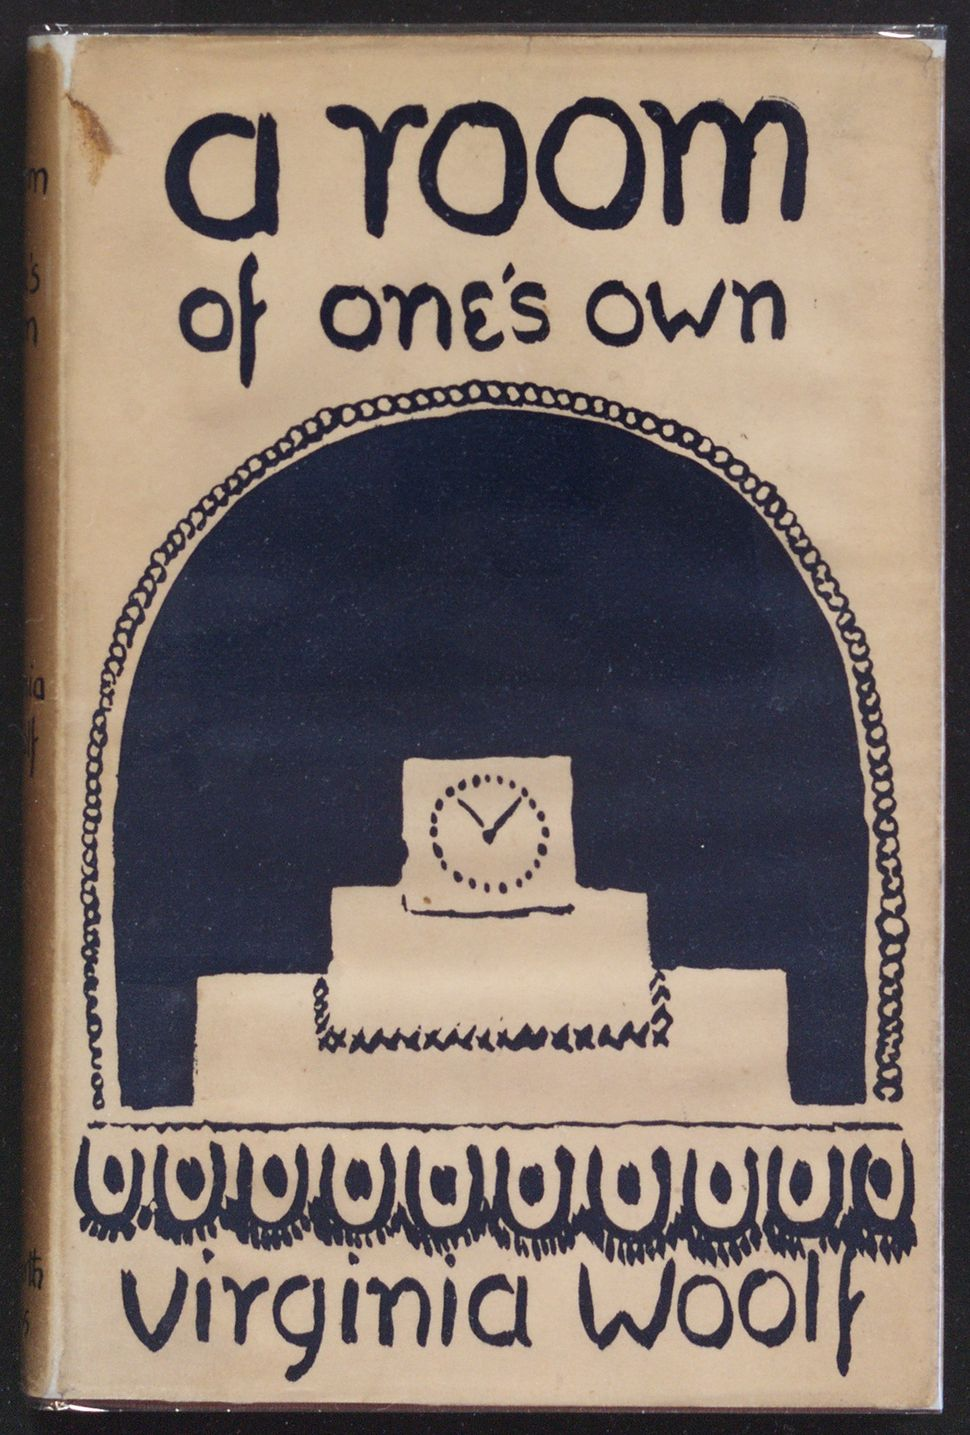 A Room of One's Own by Virginia Woolf, Hogarth Press, 1929, cover design by Vanessa Bell © Estate of Vanessa Bell, courtesy o